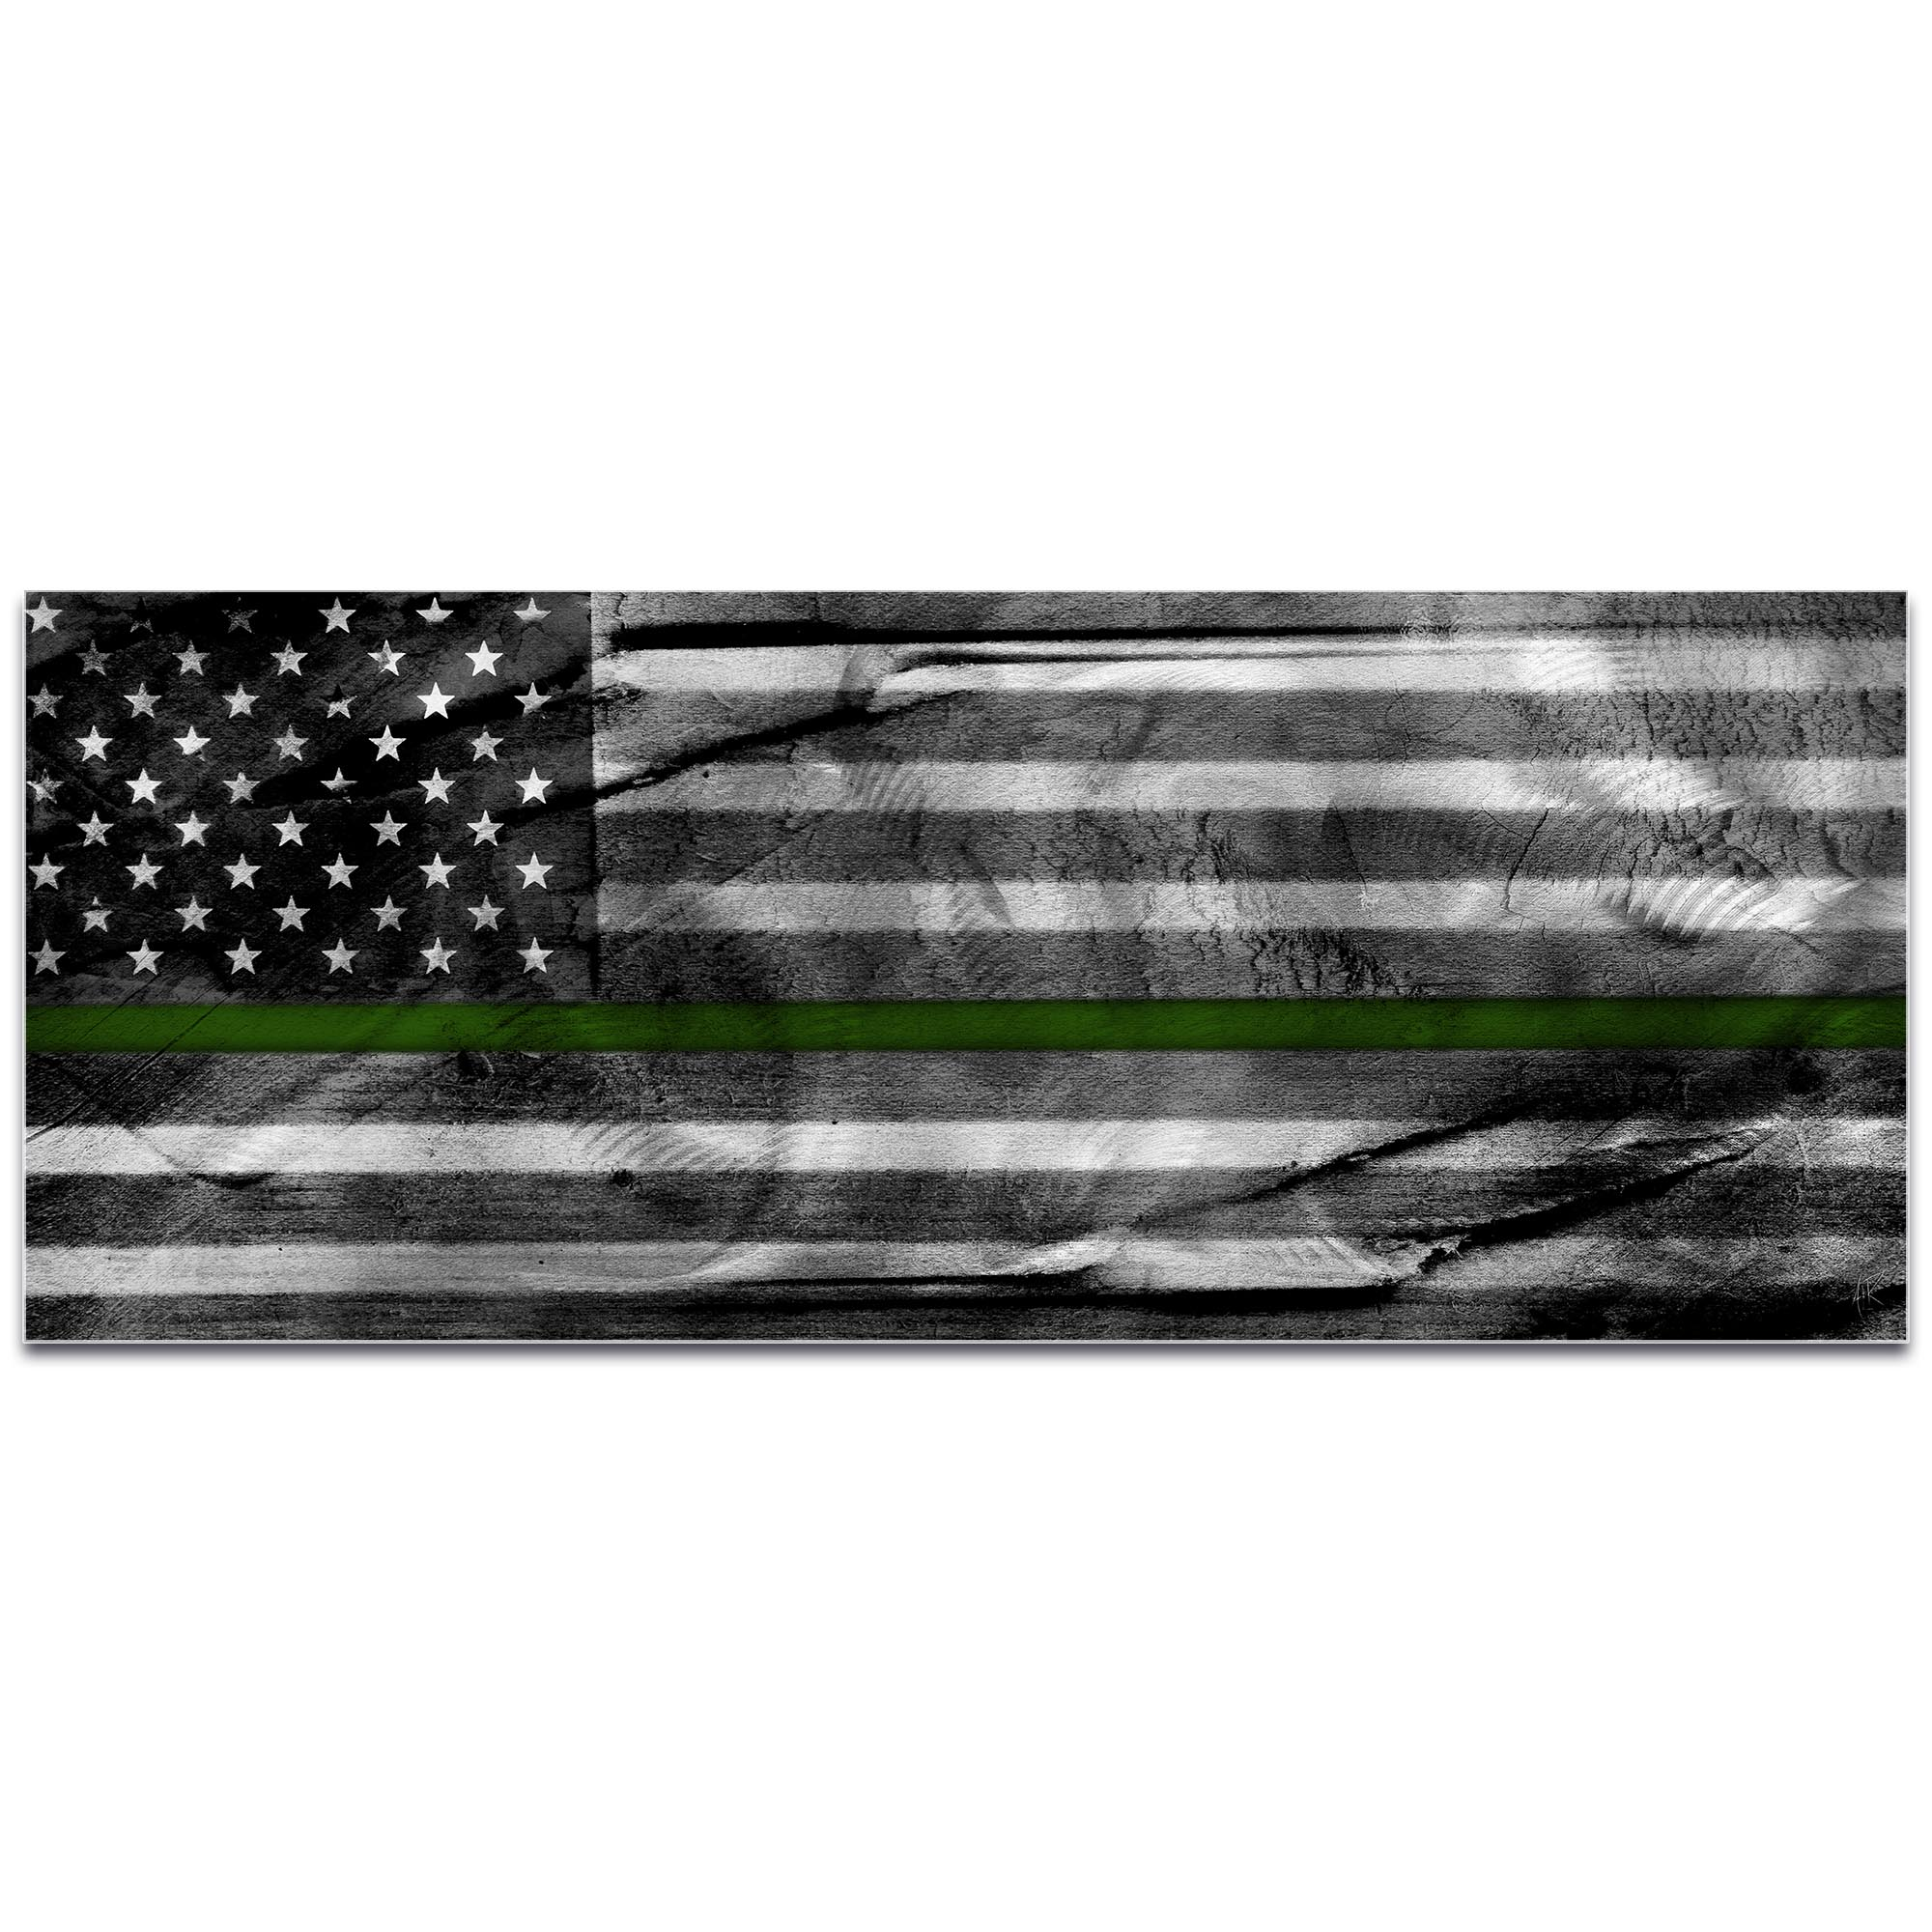 Armed Forces Flag 'American Glory Military Tribute' - US Military Art on Metal or Acrylic - Image 2